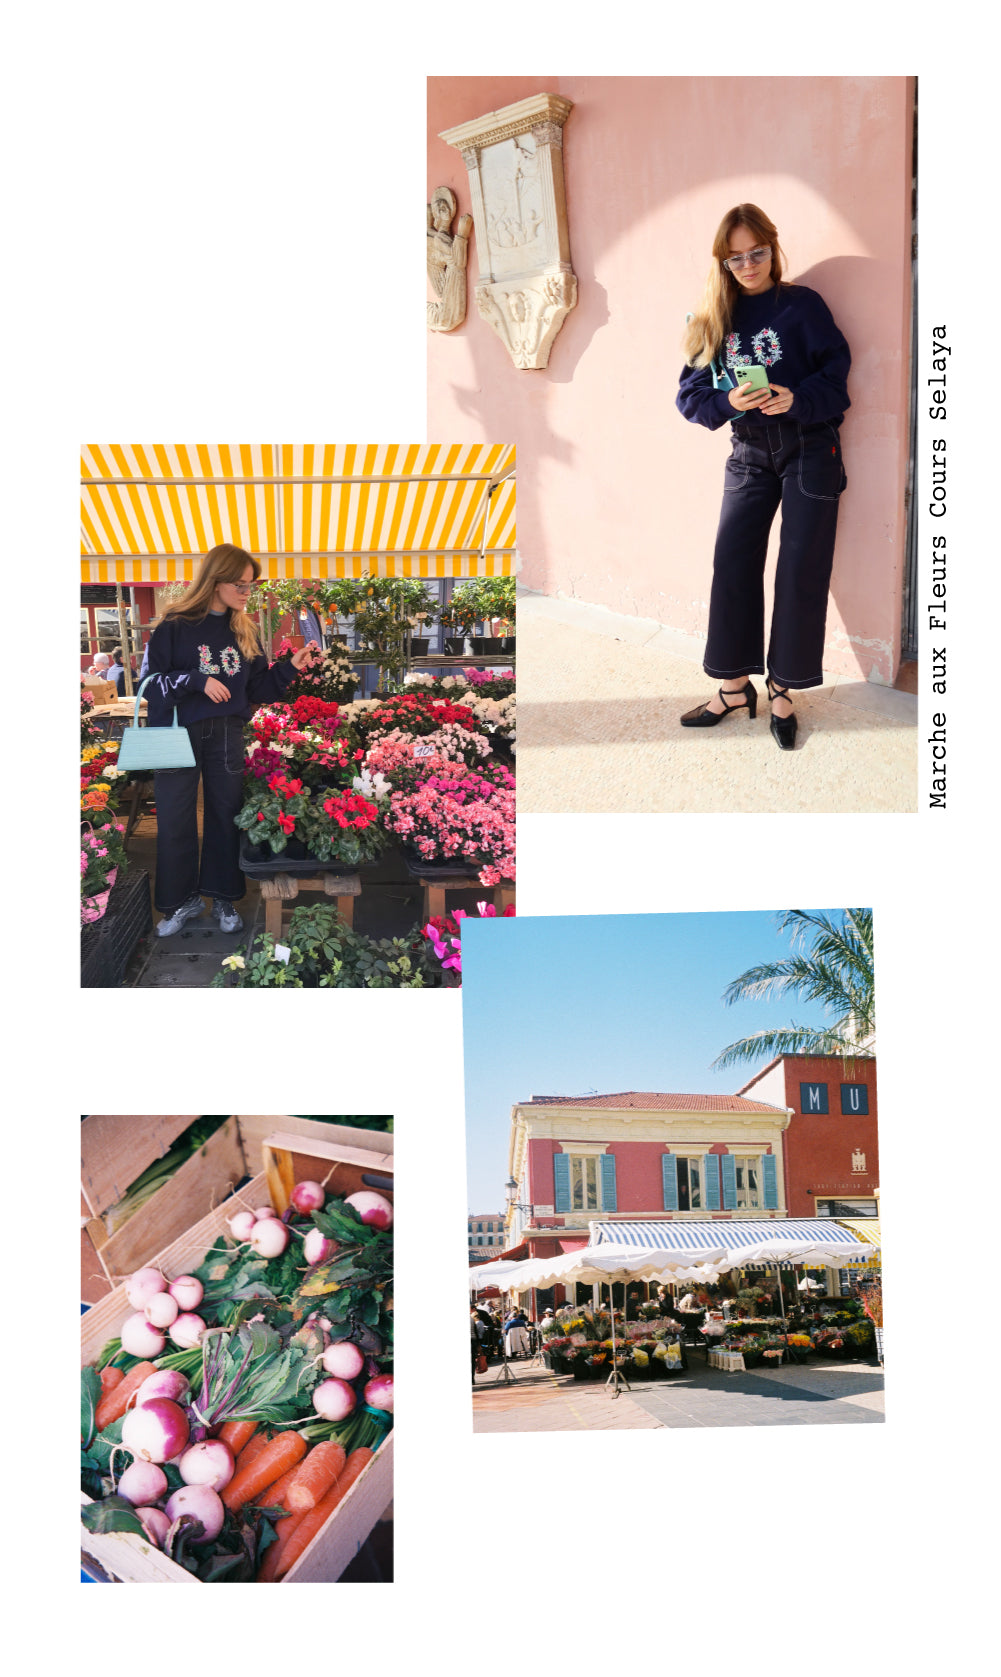 Postcards from Nice : La Vie En Rose with Anne Johannsen & Marie Jedig